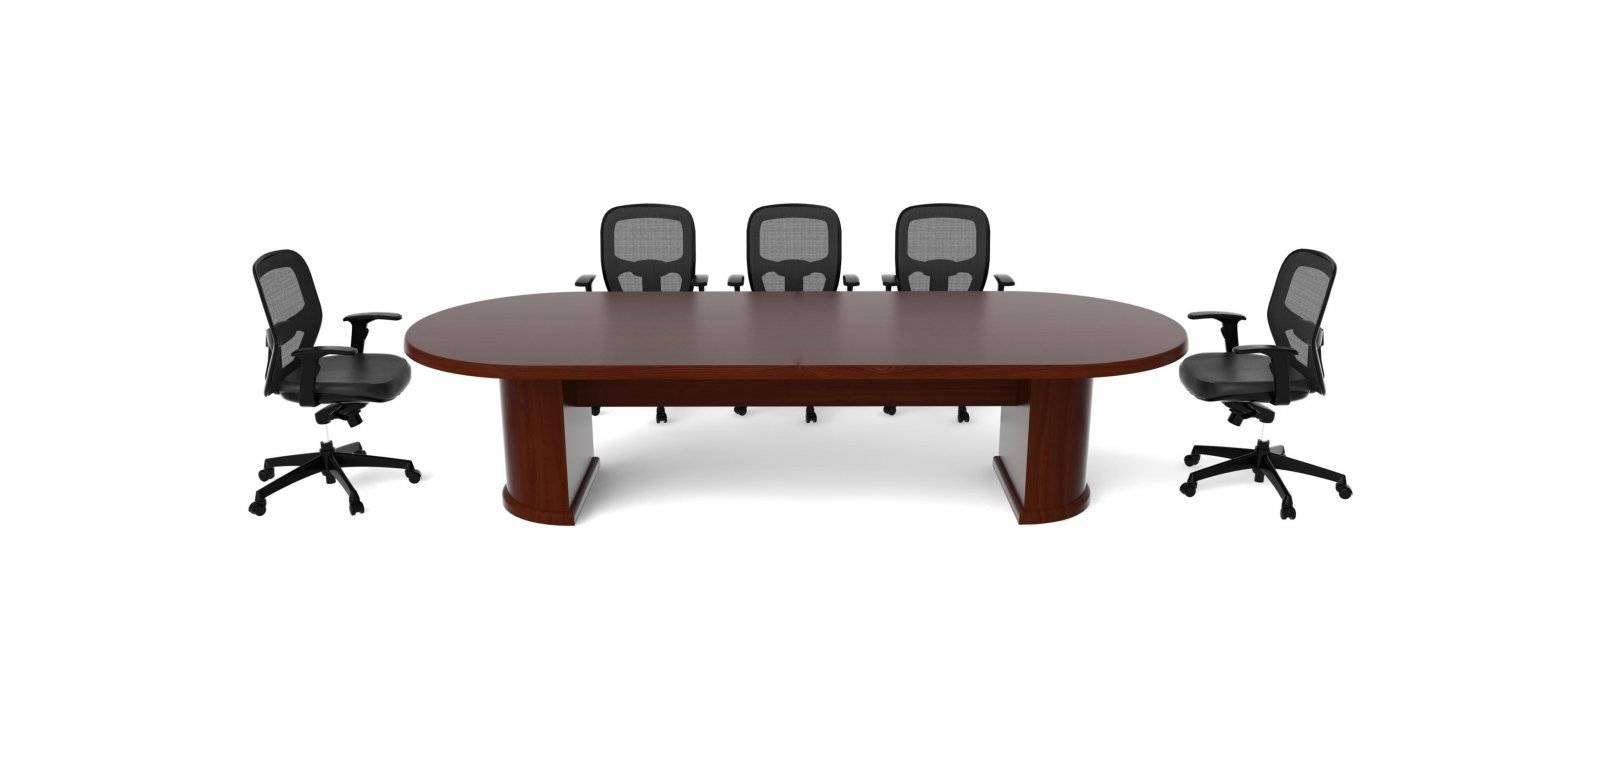 Cherryman ruby series 120 racetrack conference table for 120 conference table